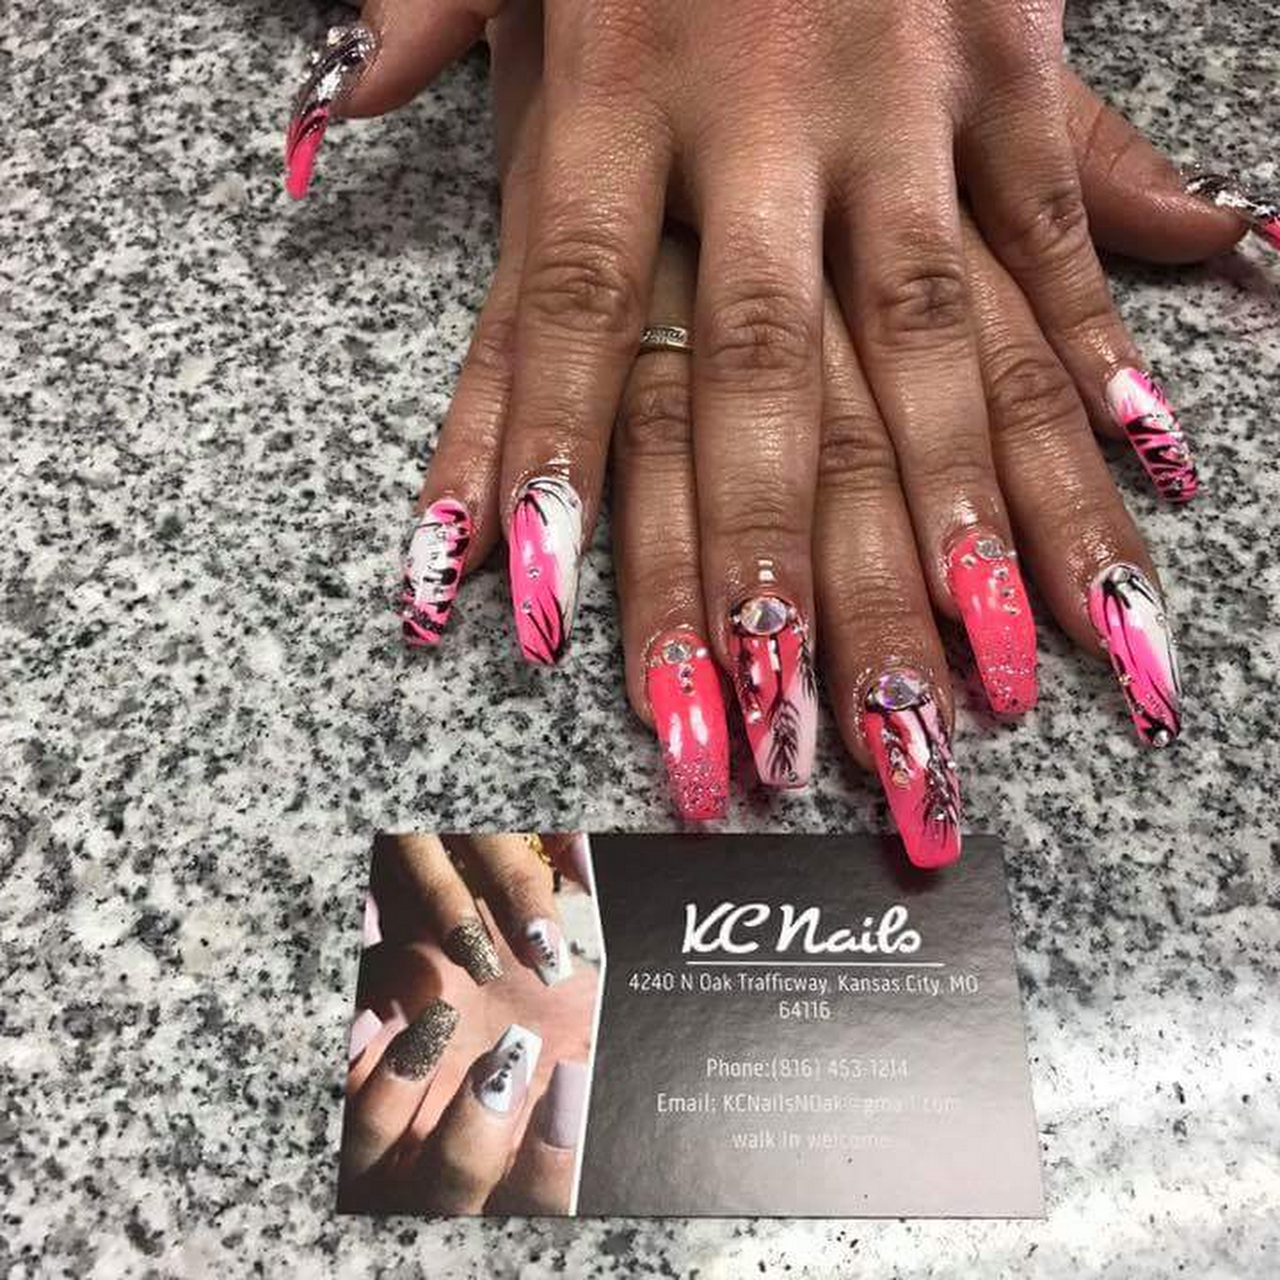 Kc Nails Nail Salon In Kansas City